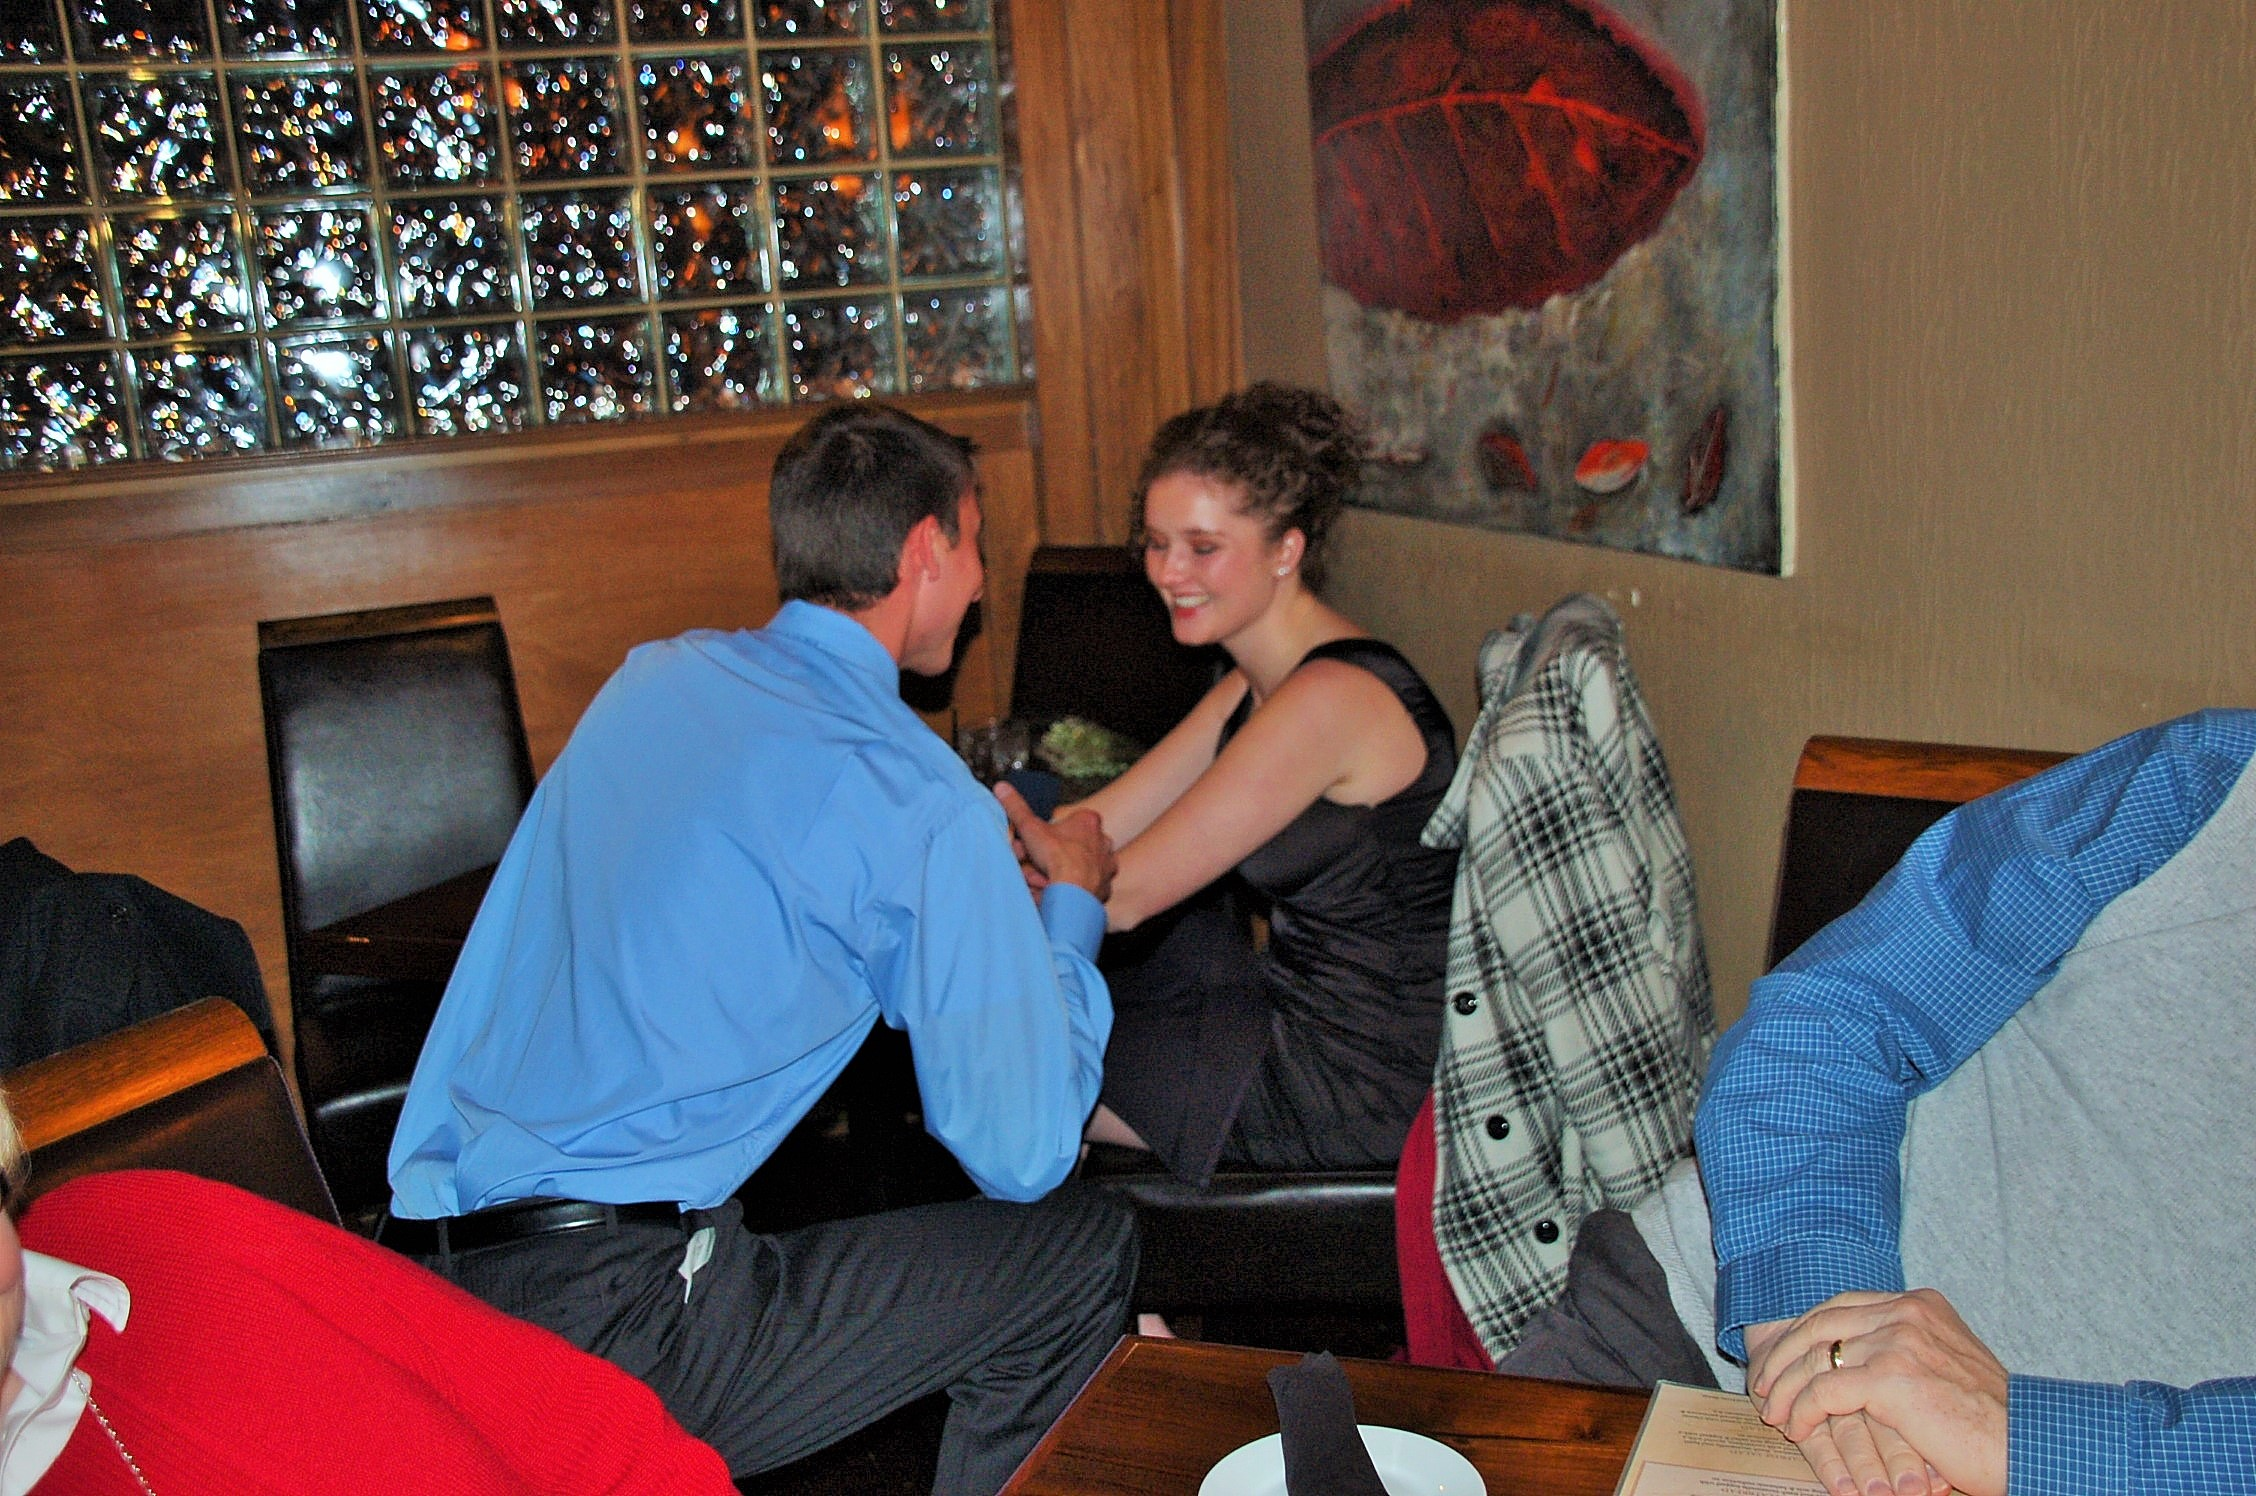 Image 9 of Erika and Greg's Romantic All-Day Proposal